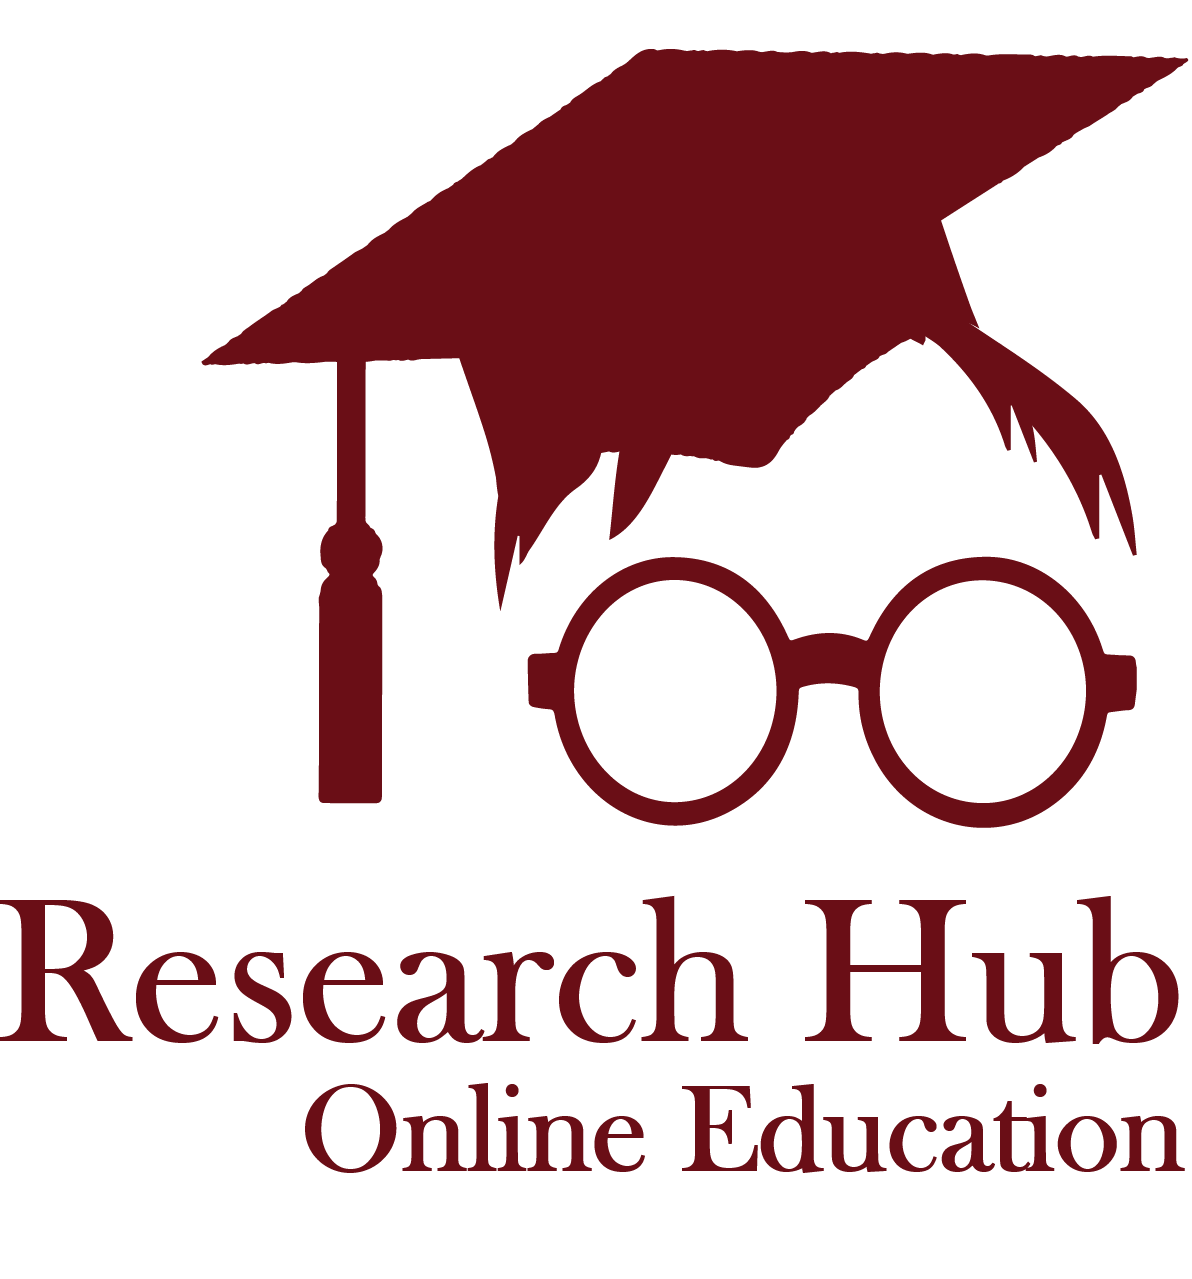 ResearchHUB Online Education